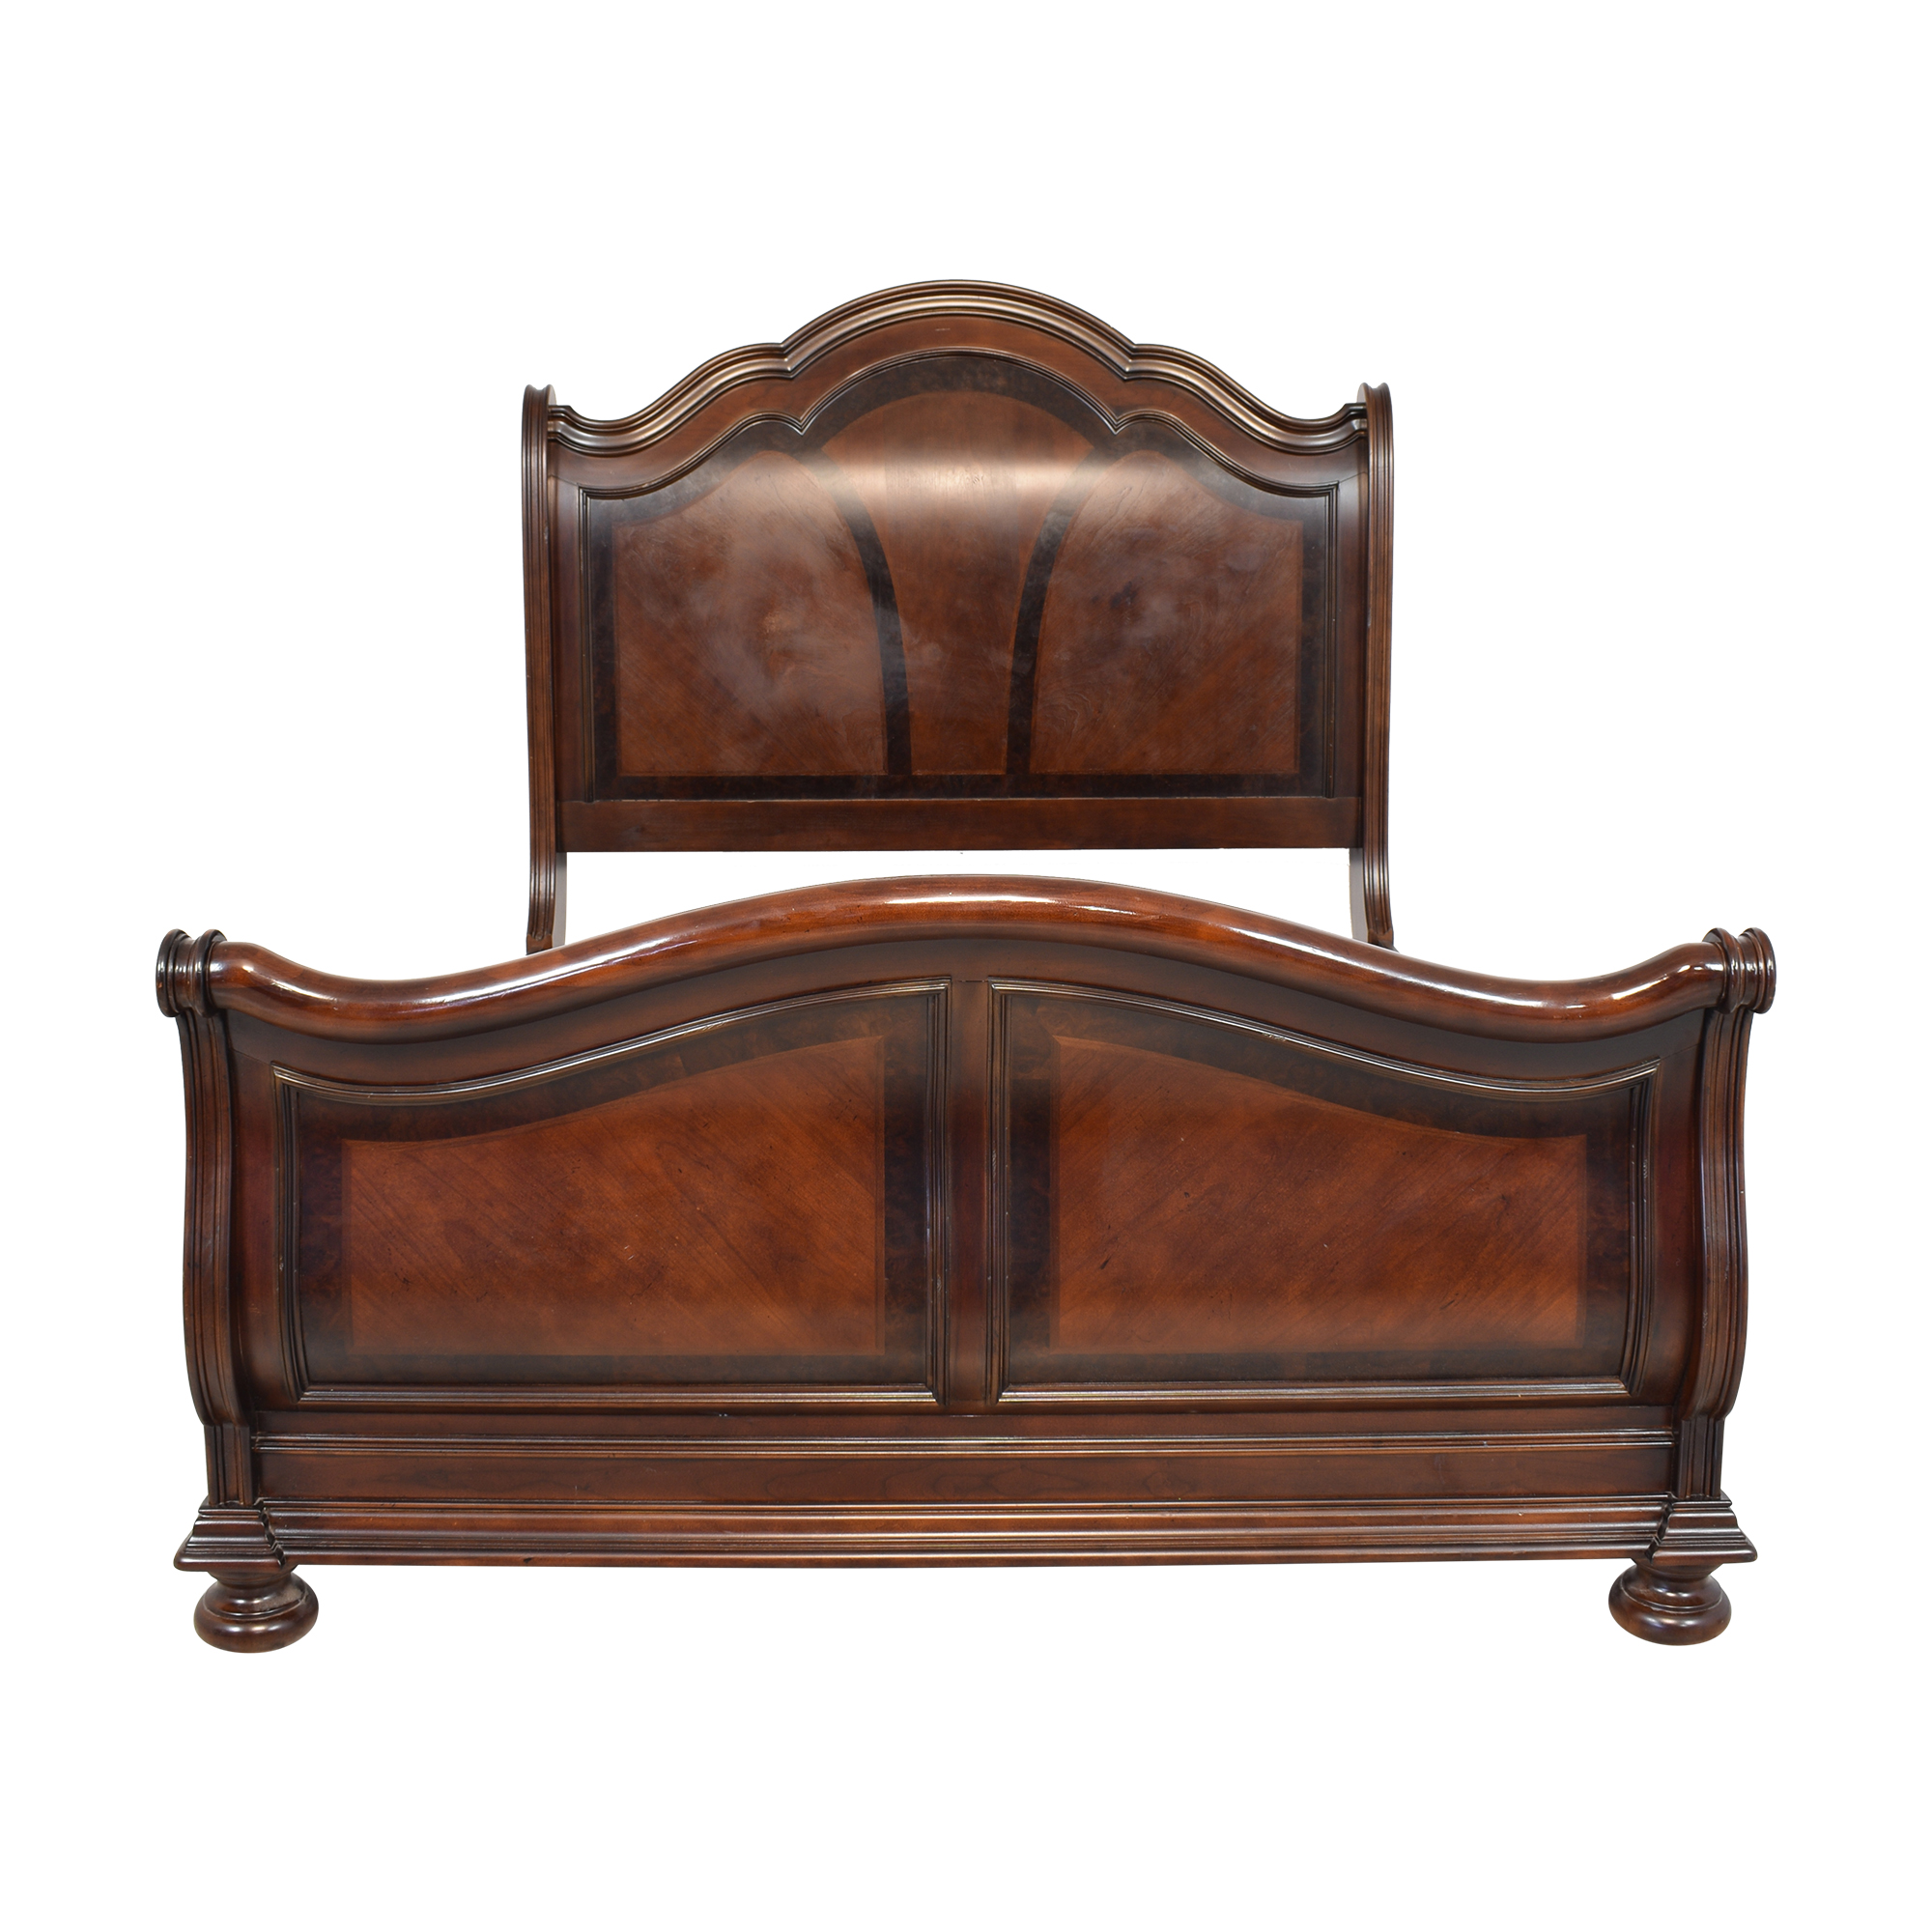 Raymour & Flanigan Raymour & Flanigan Queen Sleigh Bed second hand